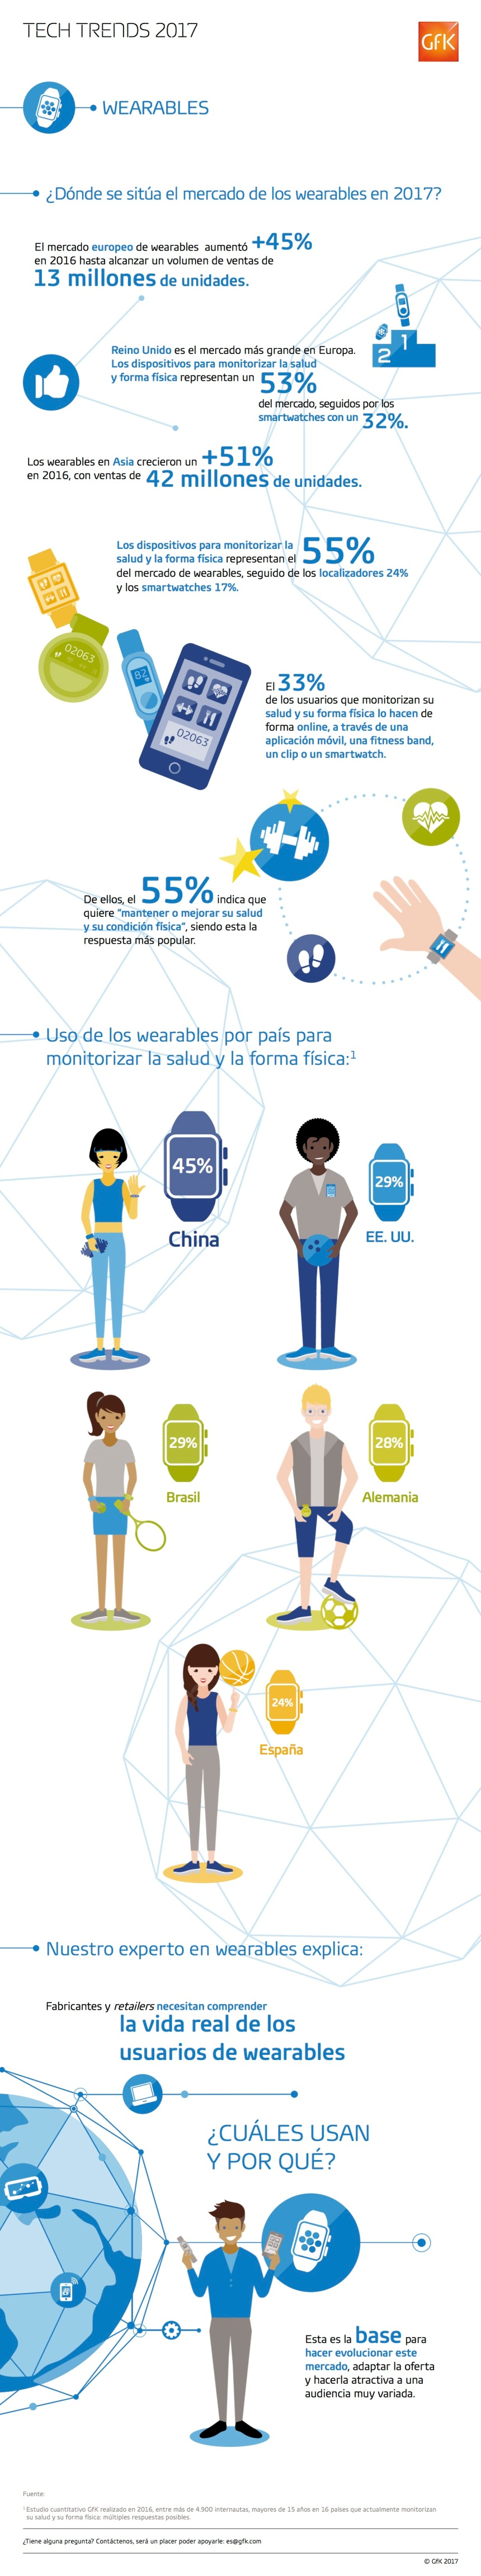 Wearables: tendencias